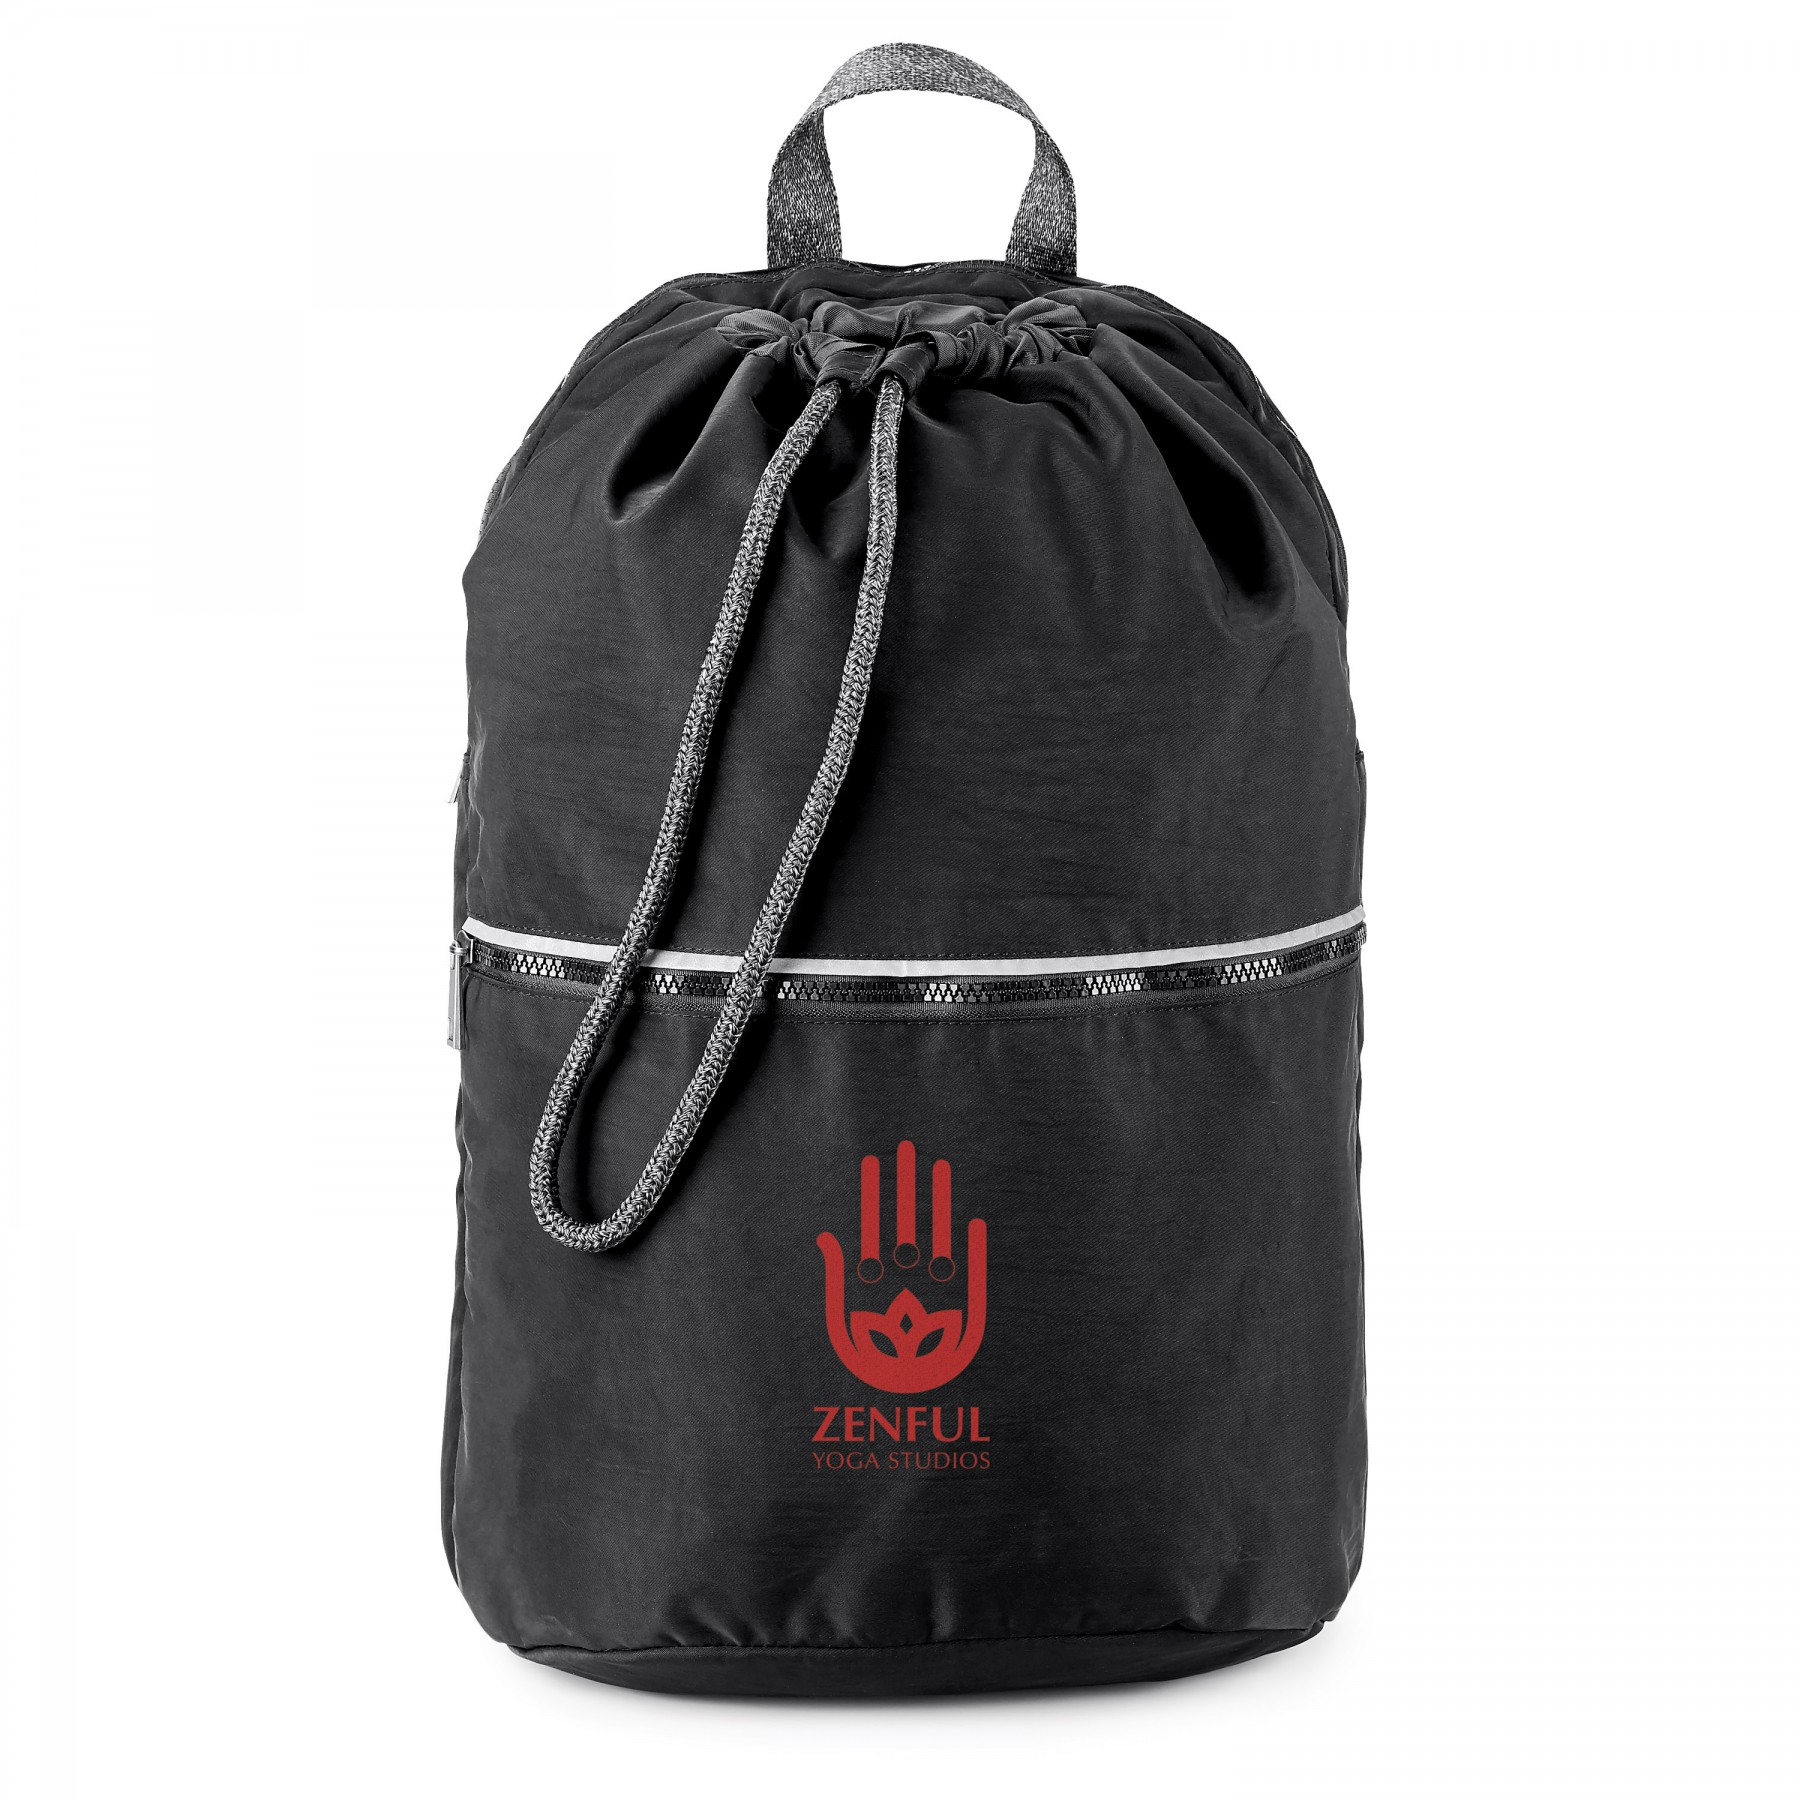 Athleisure Drawstring Backpack, BG112, One Colour Imprint